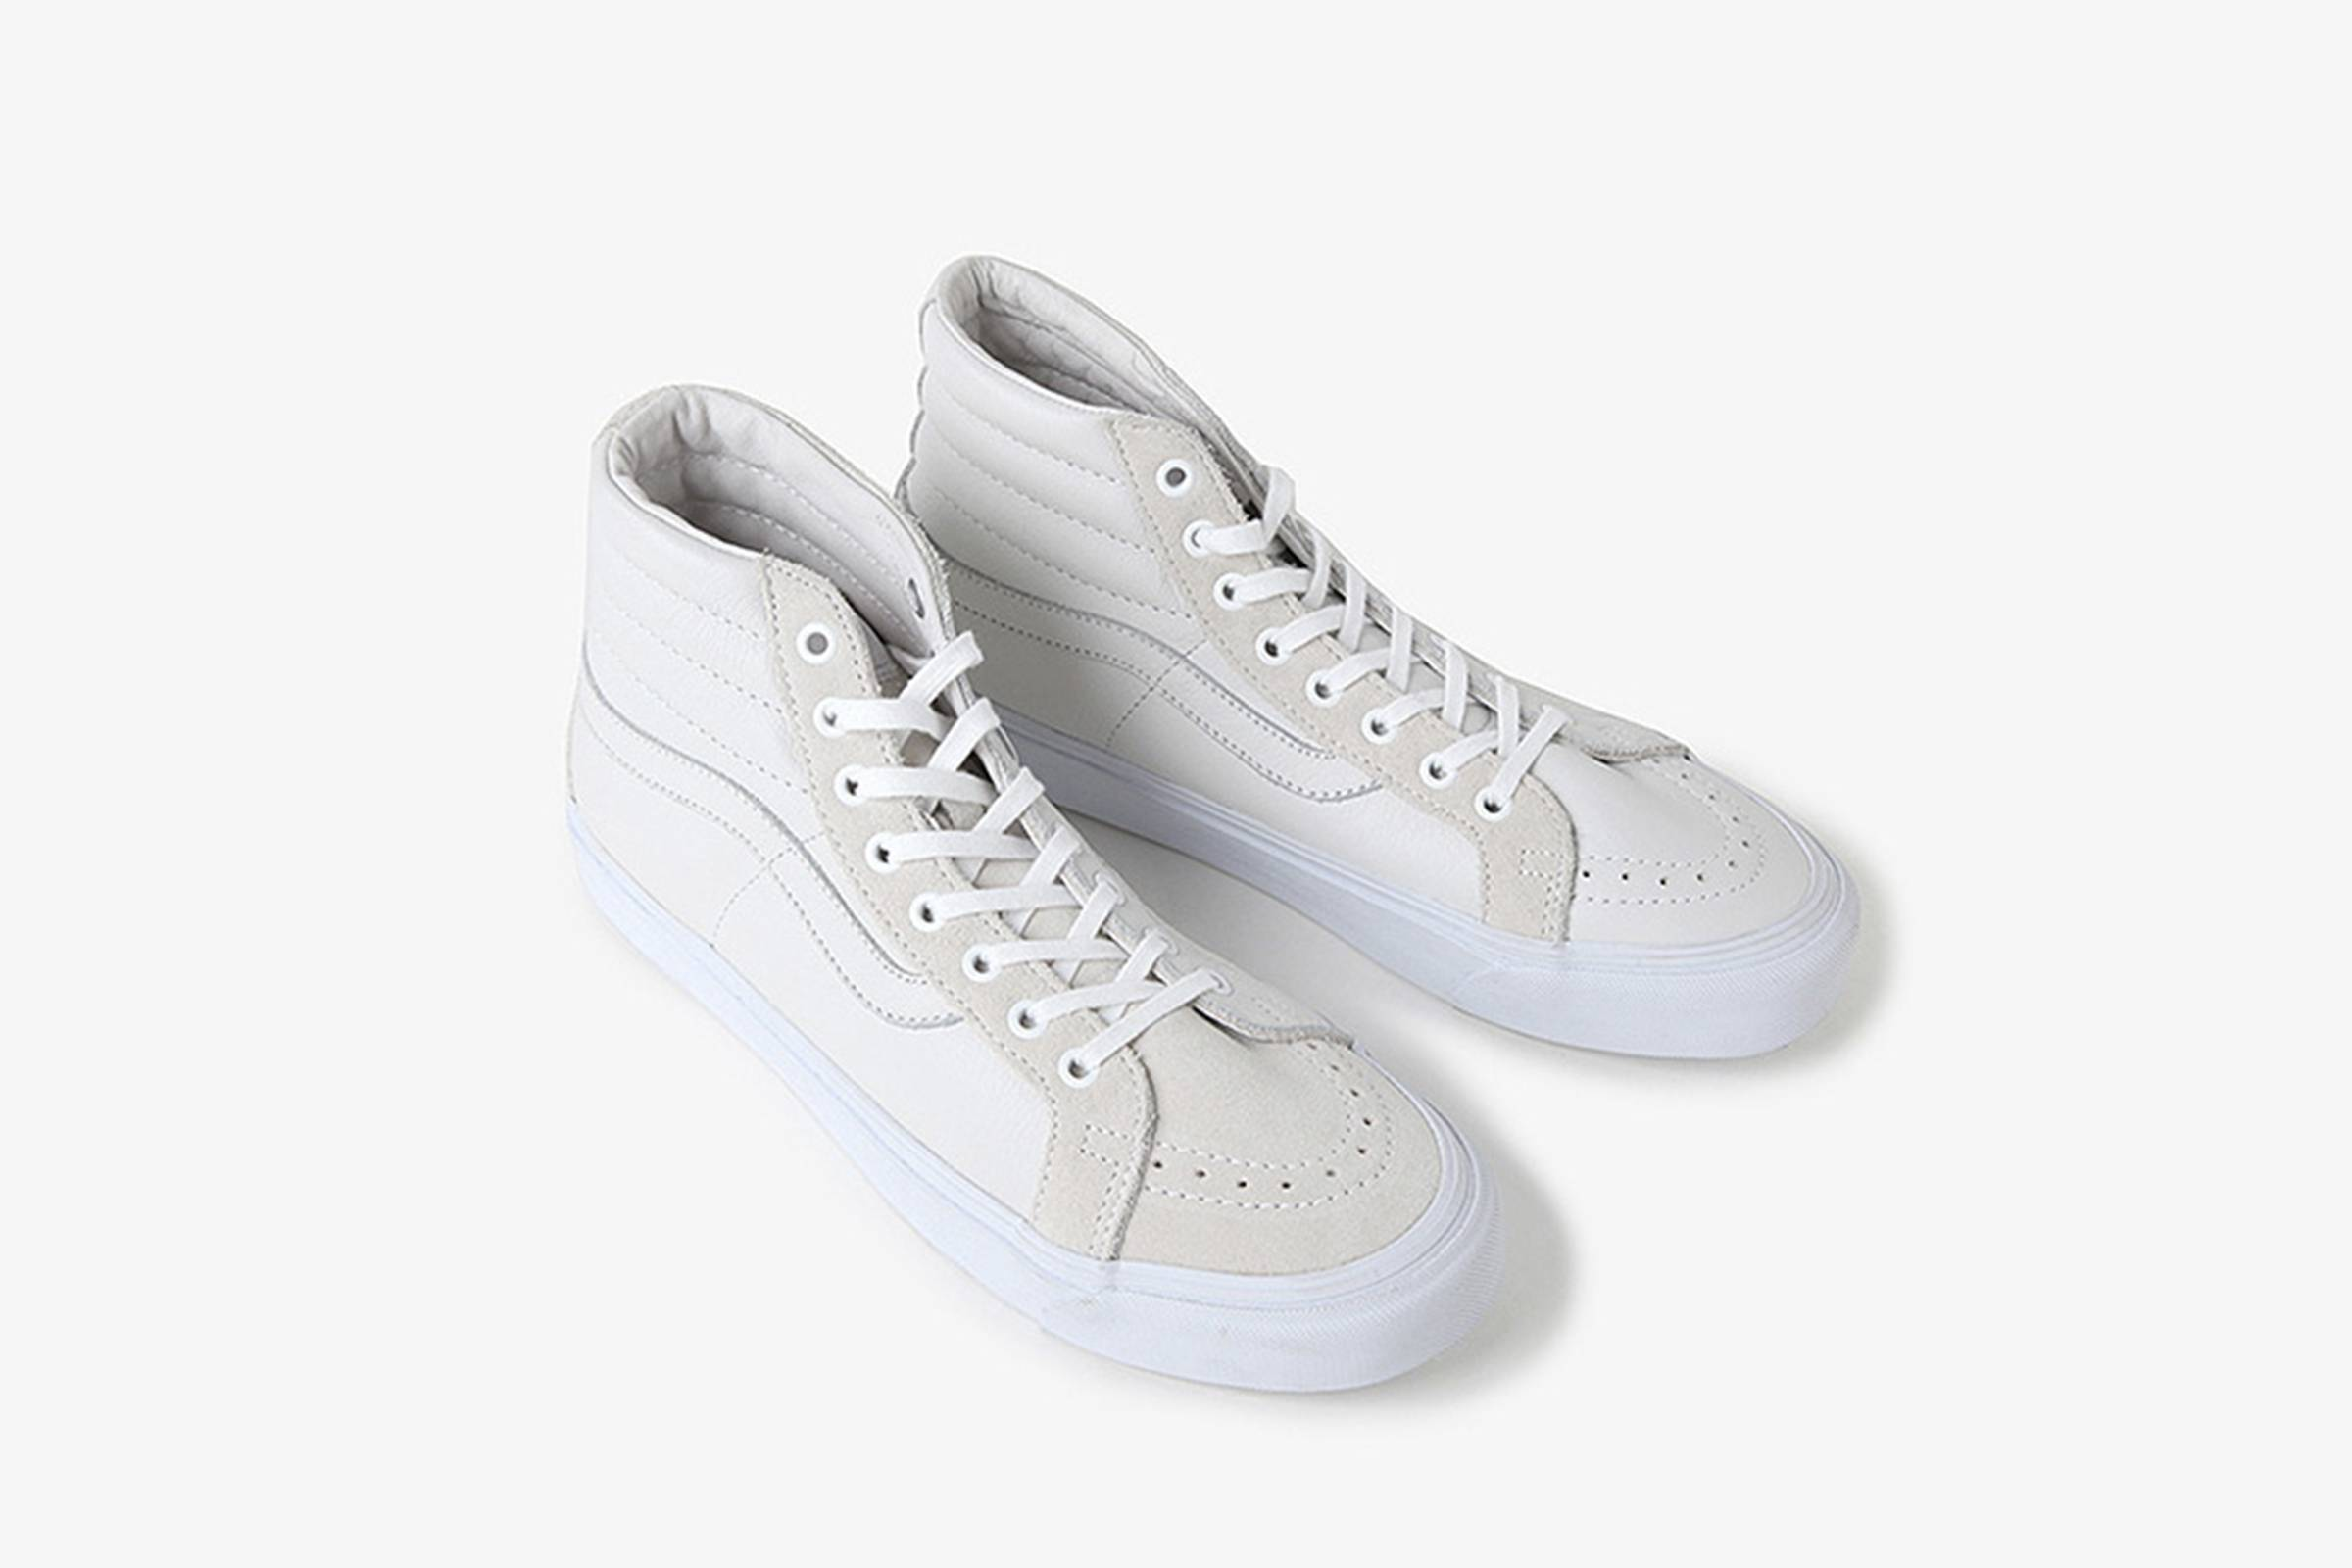 e36f491629 2016 saw the release of this mis-matched Vans pack designed in collaboration  with New York-based label Engineered Garments. The brand was able to put  their ...